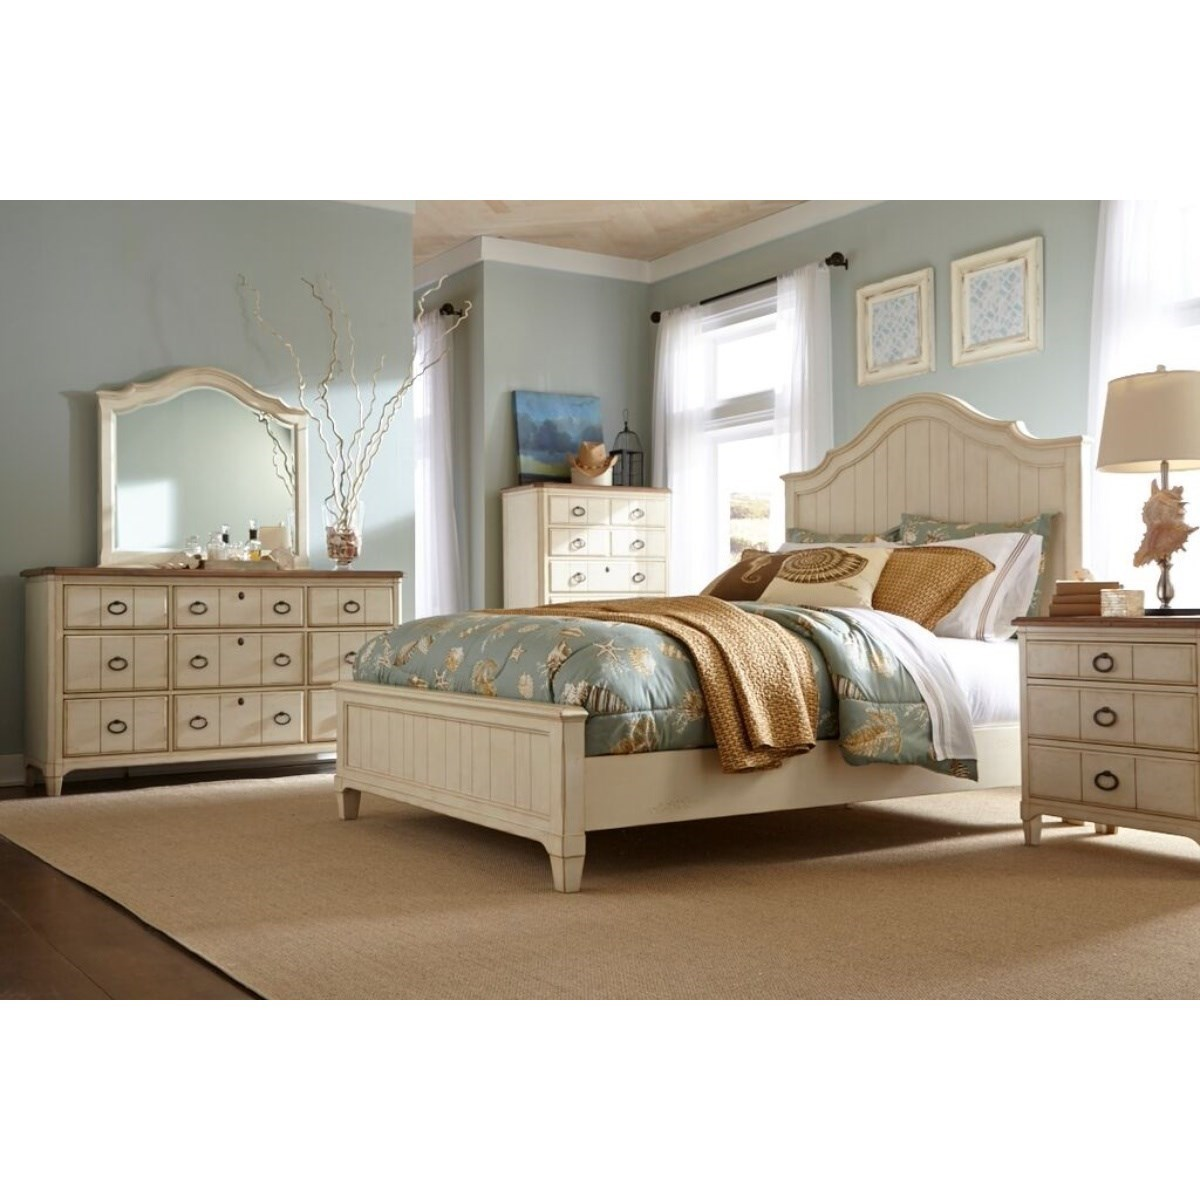 Panama Jack by Palmetto Home Millbrook Queen Bedroom Group - Item Number: 112 Q Bedroom Group 1